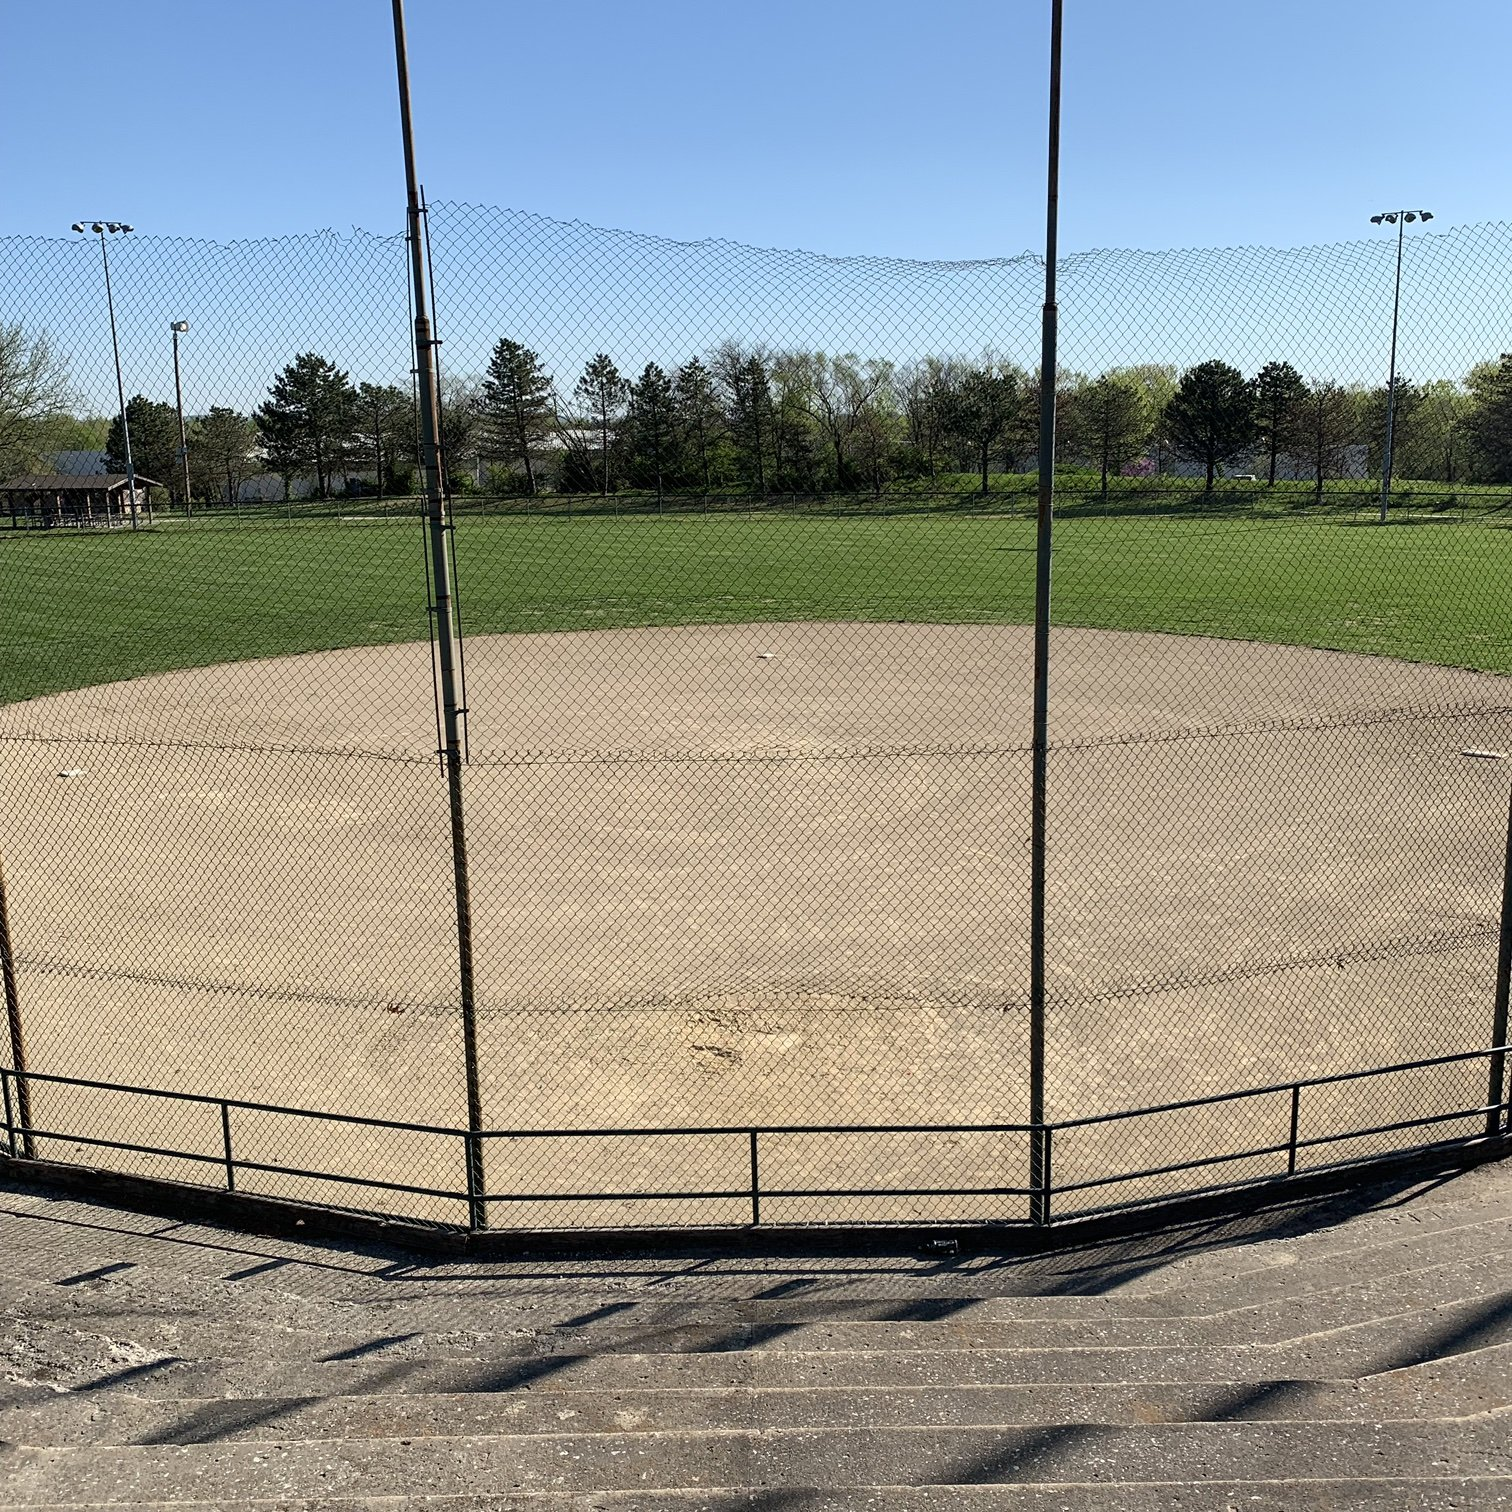 The view from the top of the baseball stands.